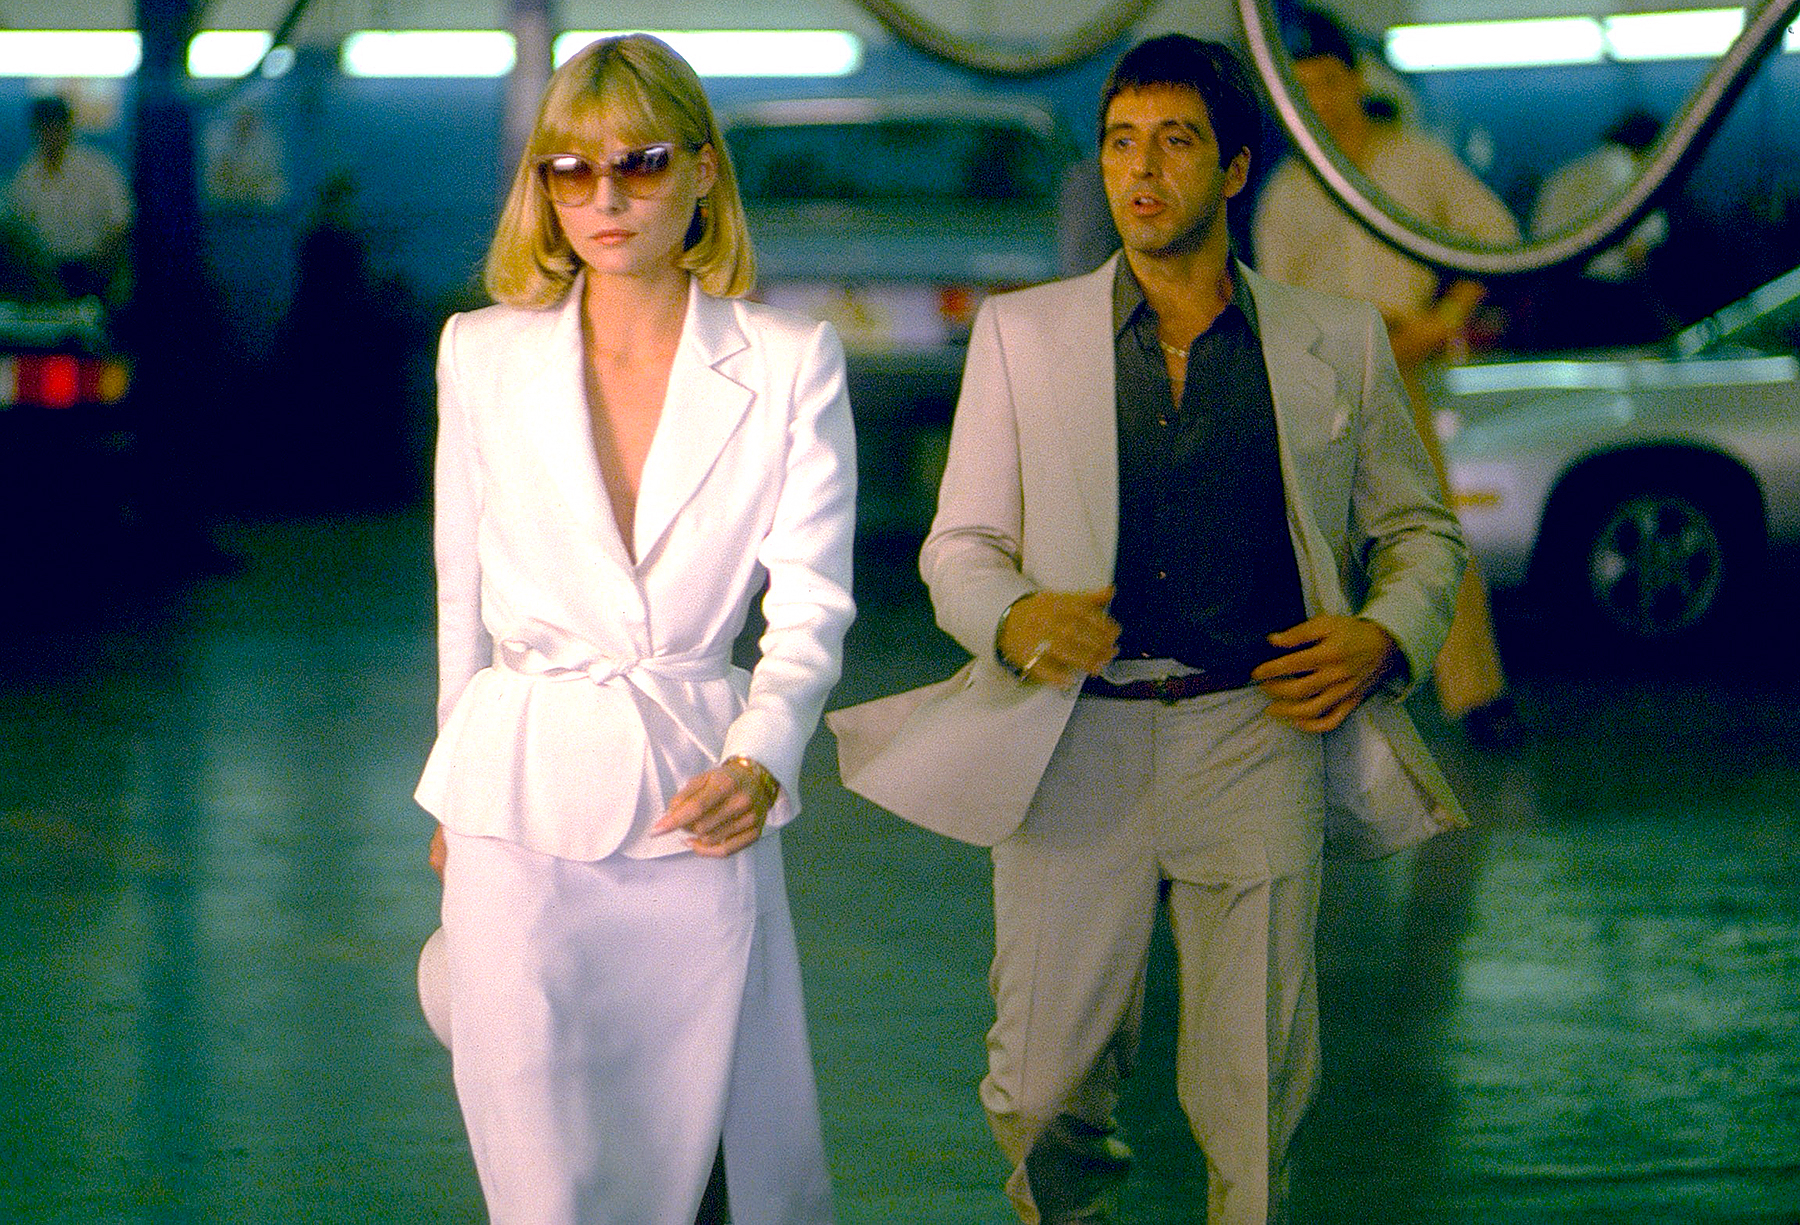 Michelle Pfeiffer and Al Pacino in 1983's Scarface.